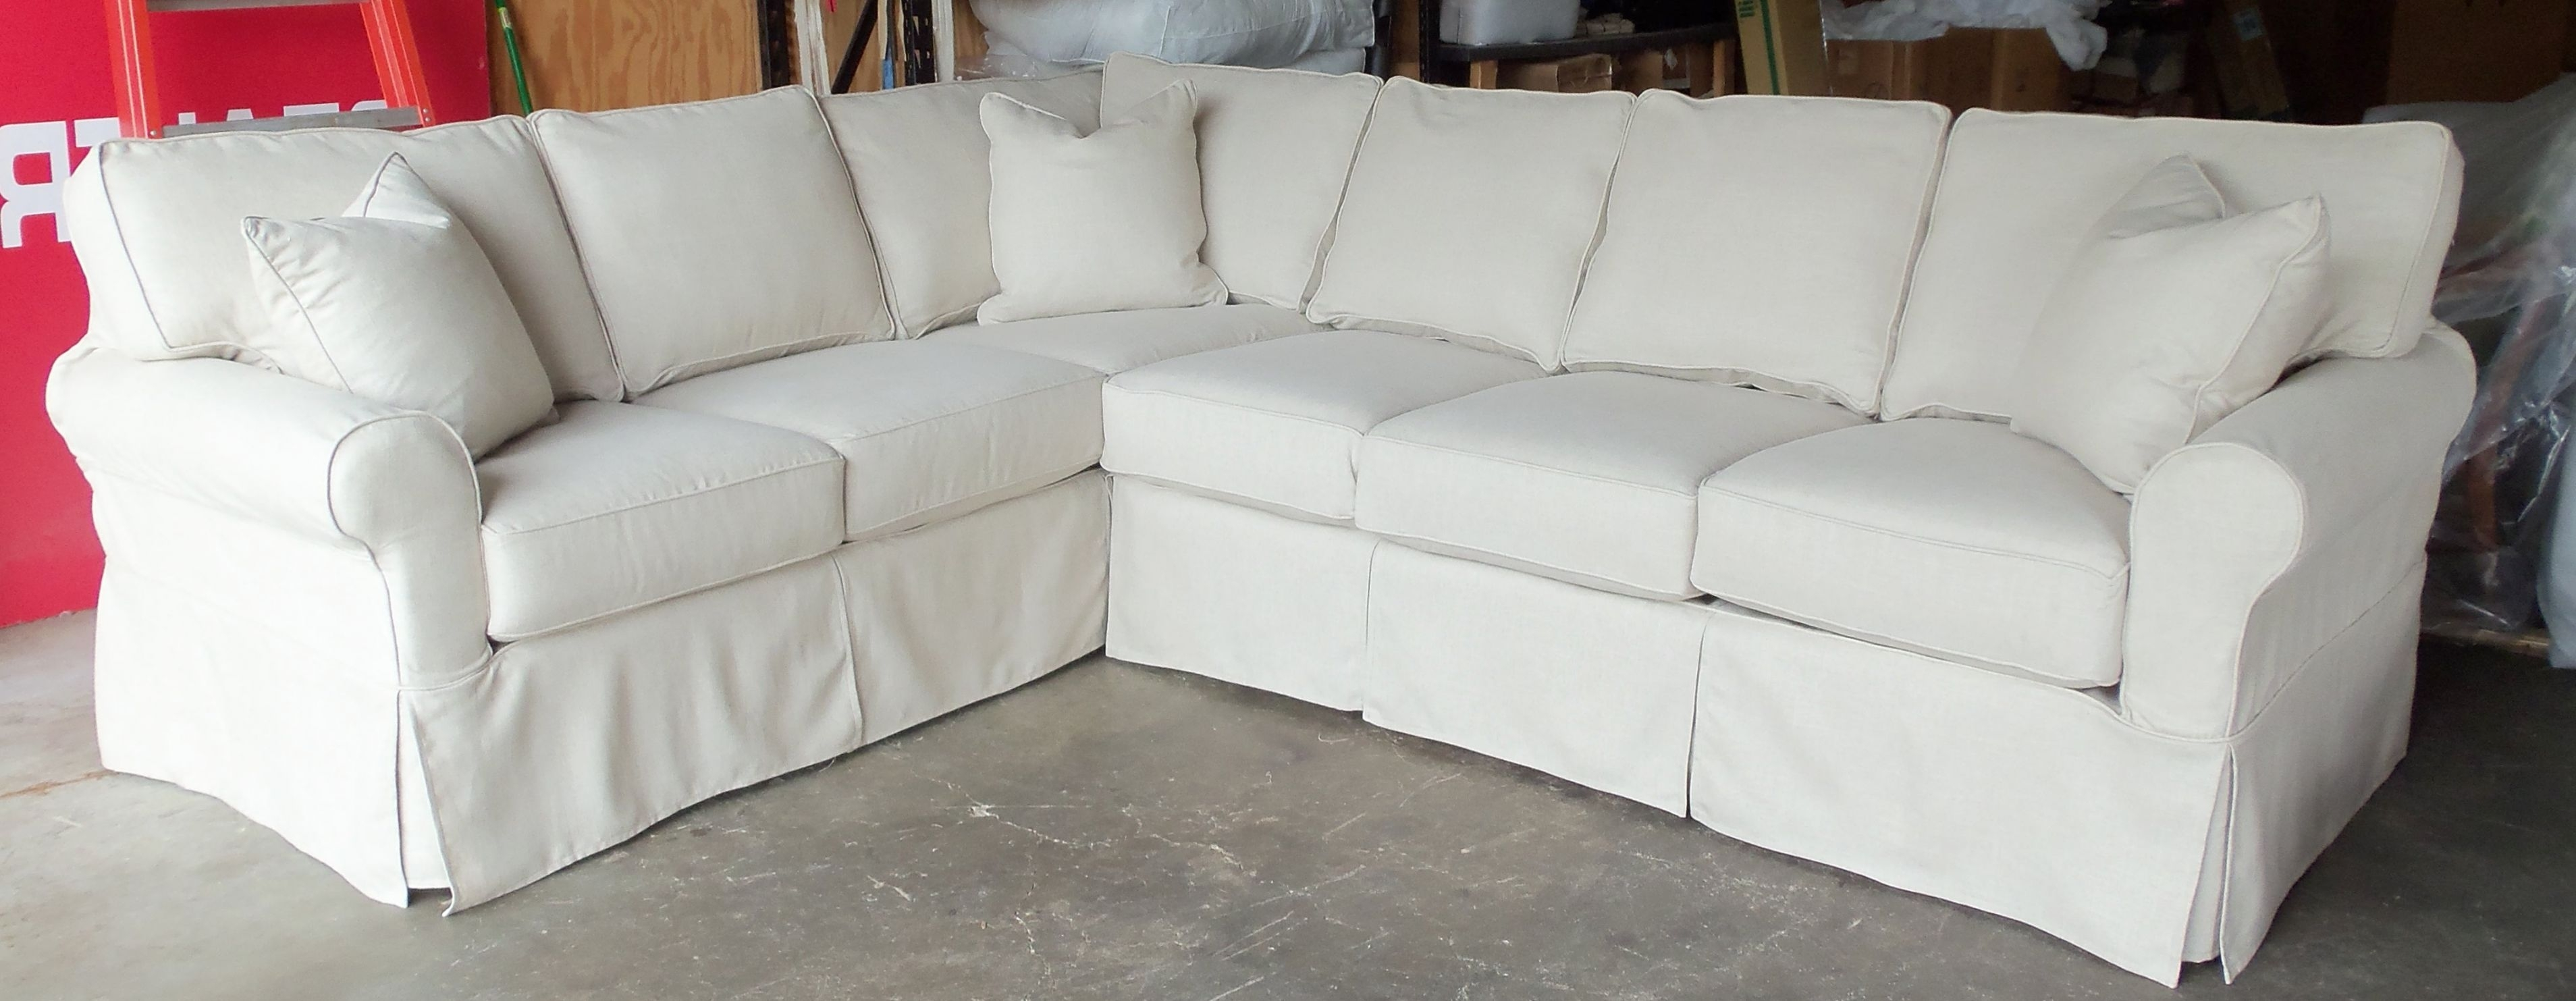 Modern Concept Sectional Sofa Covers And Rowe Furniture Slipcover intended for Sectional Sofas at Birmingham Al (Image 8 of 15)